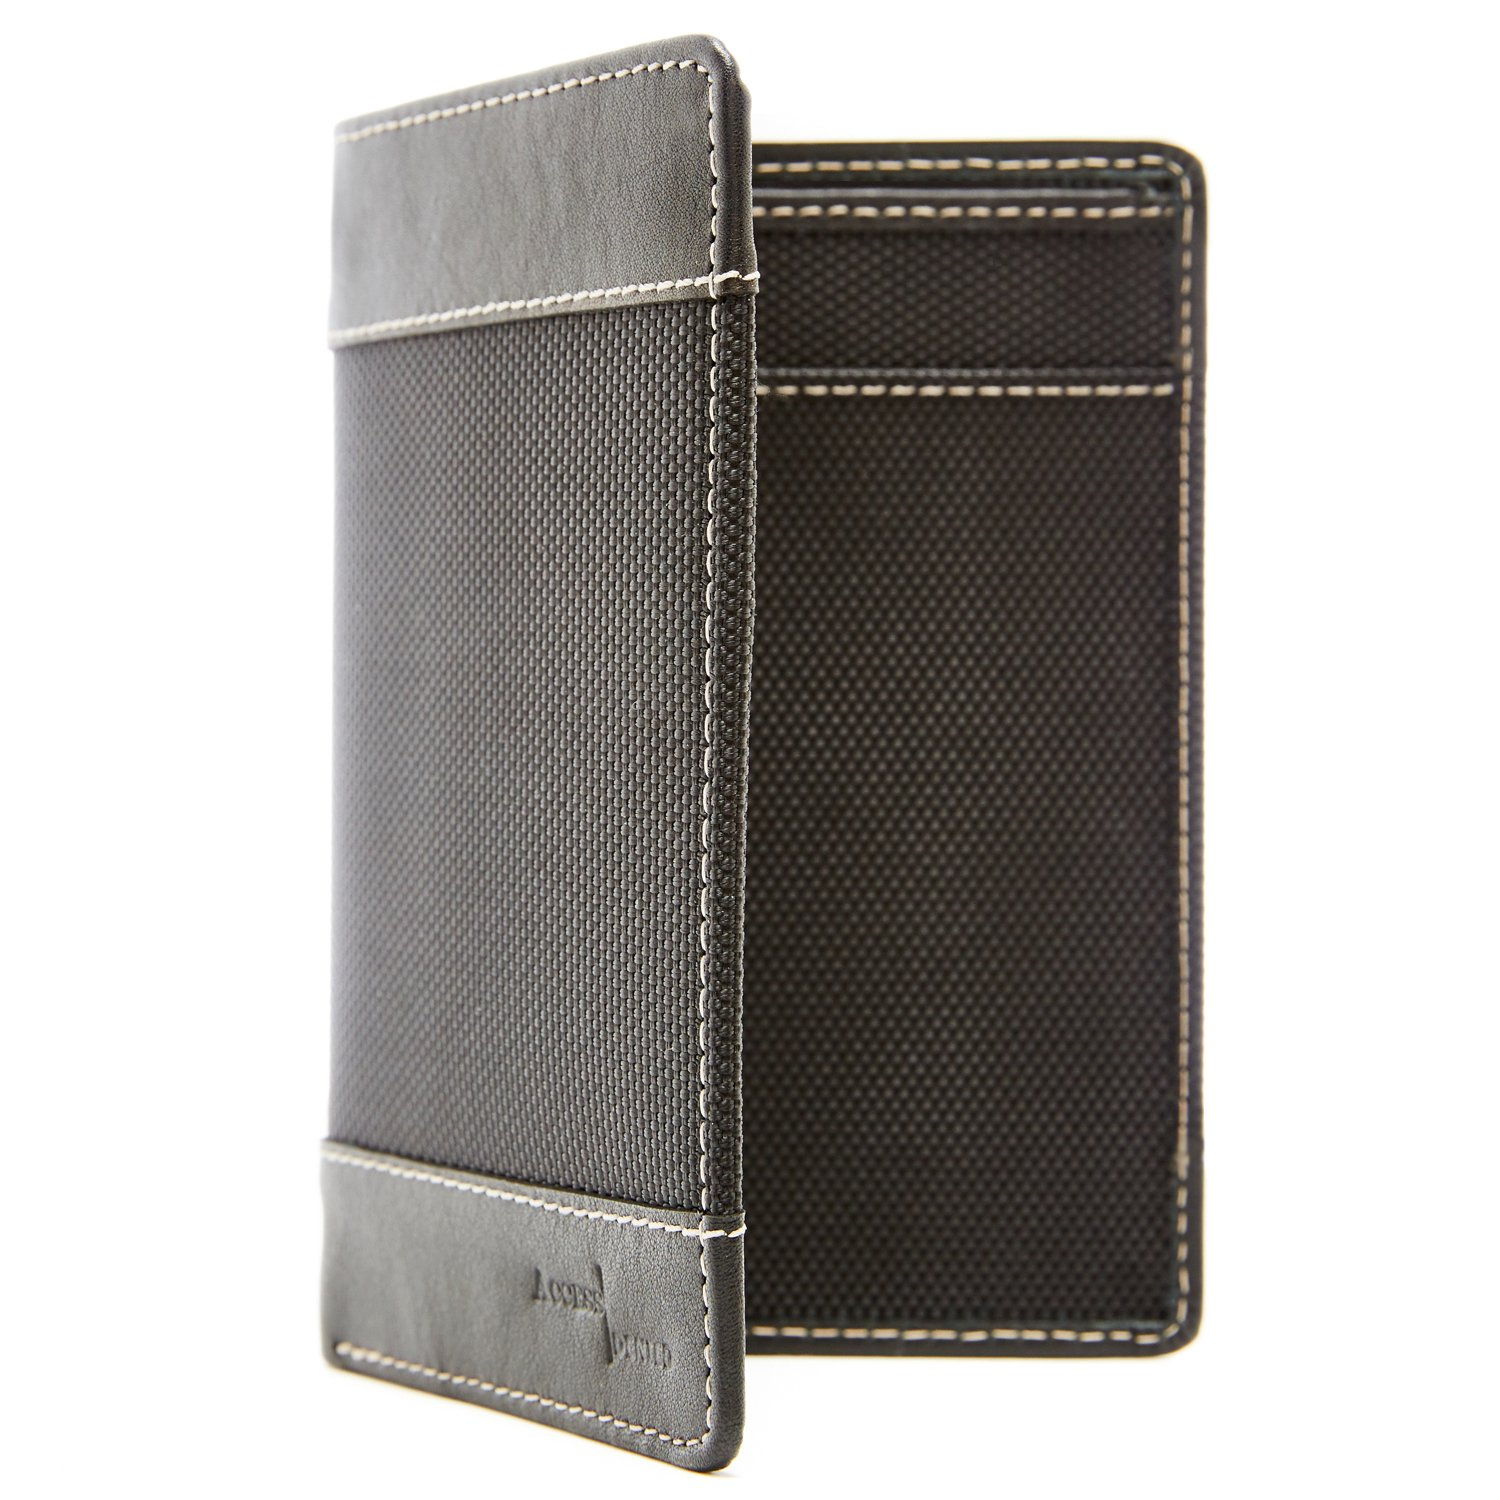 Passport Holder Cover RFID Blocking - Leather Travel Wallet Credit Card Organizer by Access Denied (Image #7)